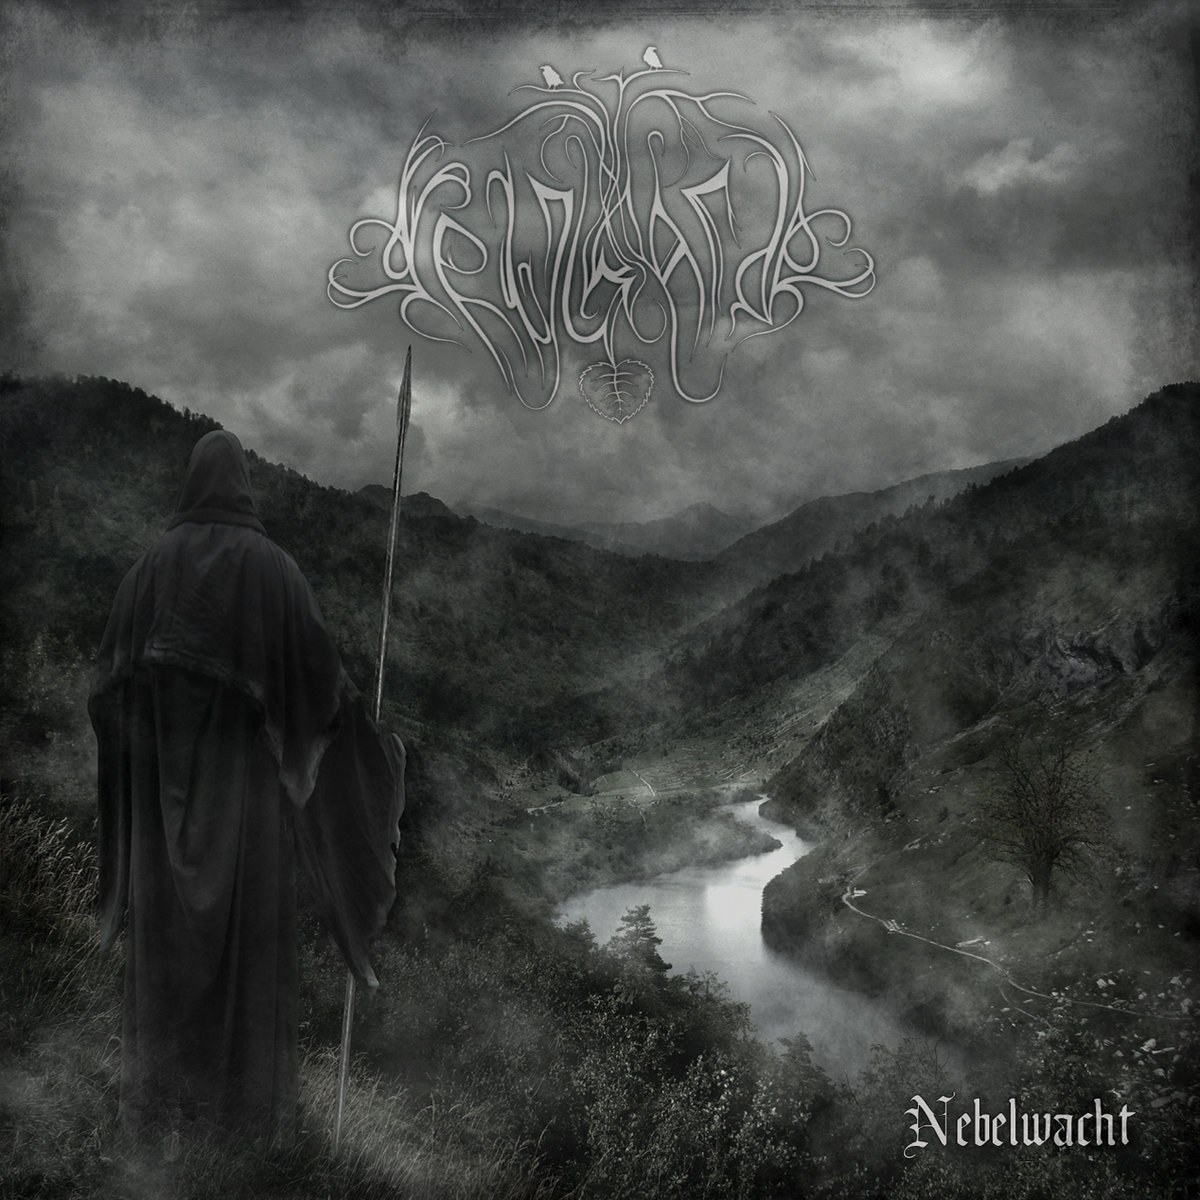 Review for Frijgard - Nebelwacht